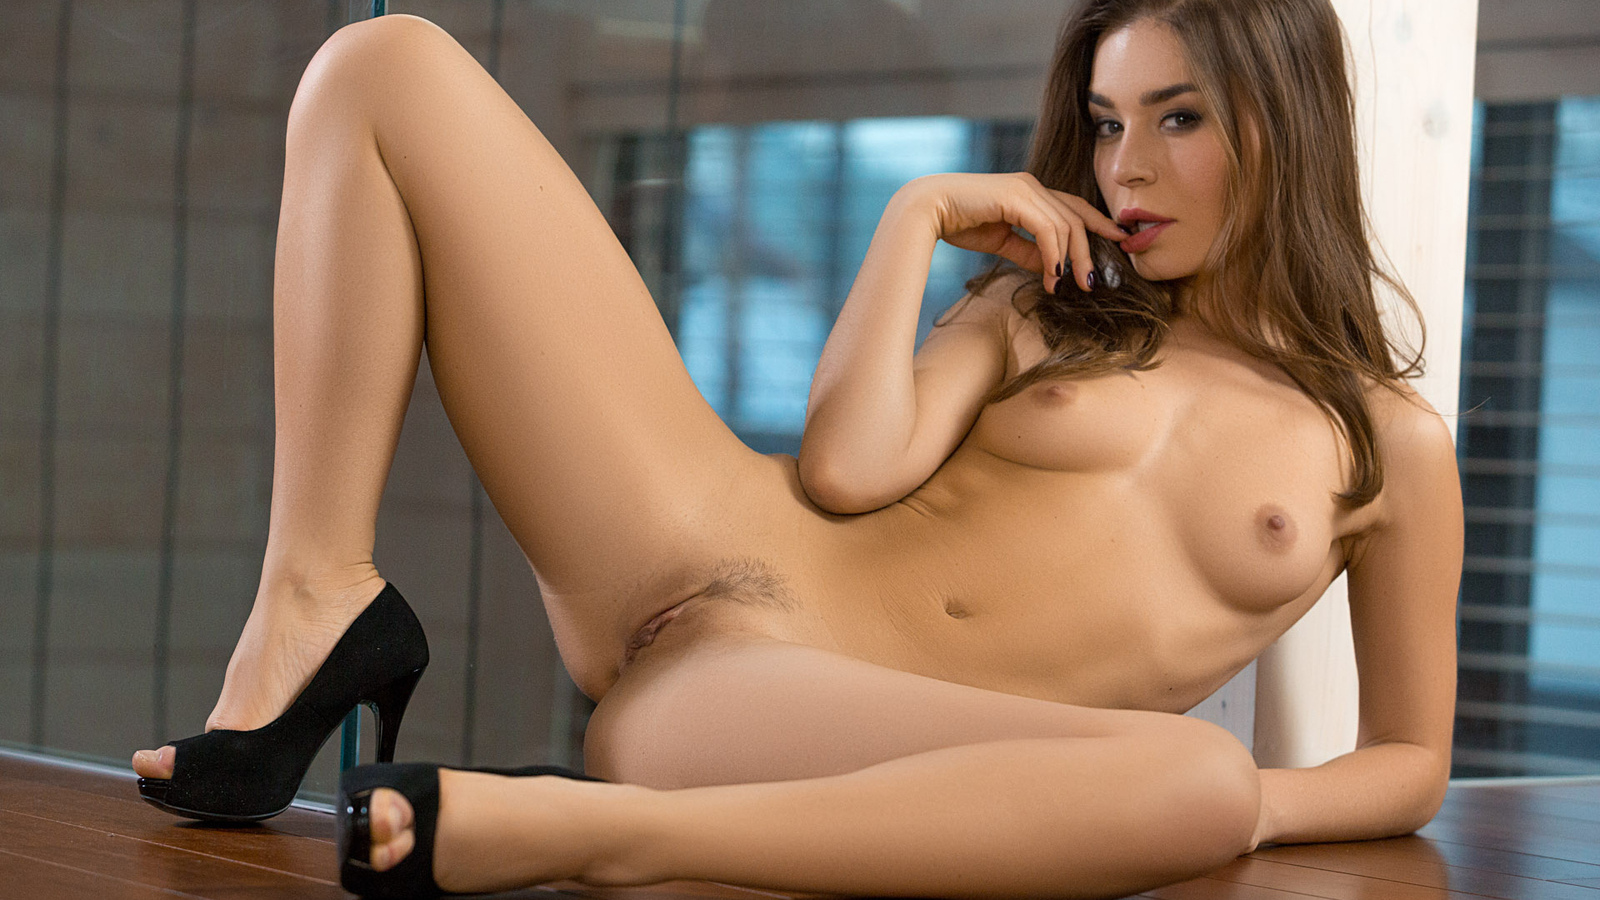 Playboy girls naked showing their vaginas, sex positions free videos